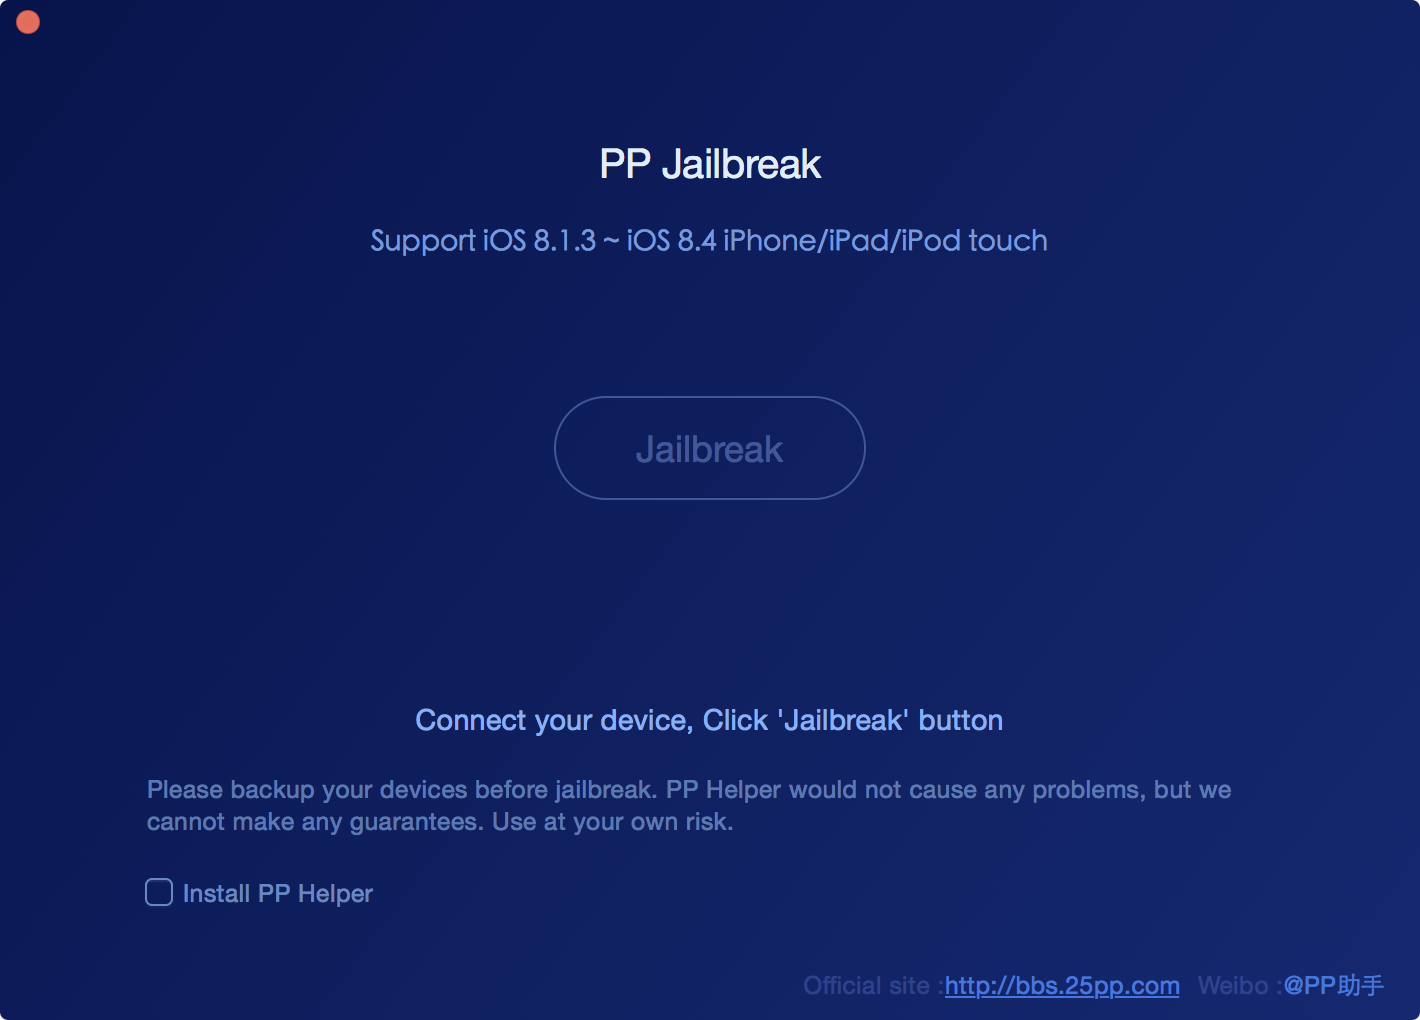 PP jailbreak Mac iOS 8.4